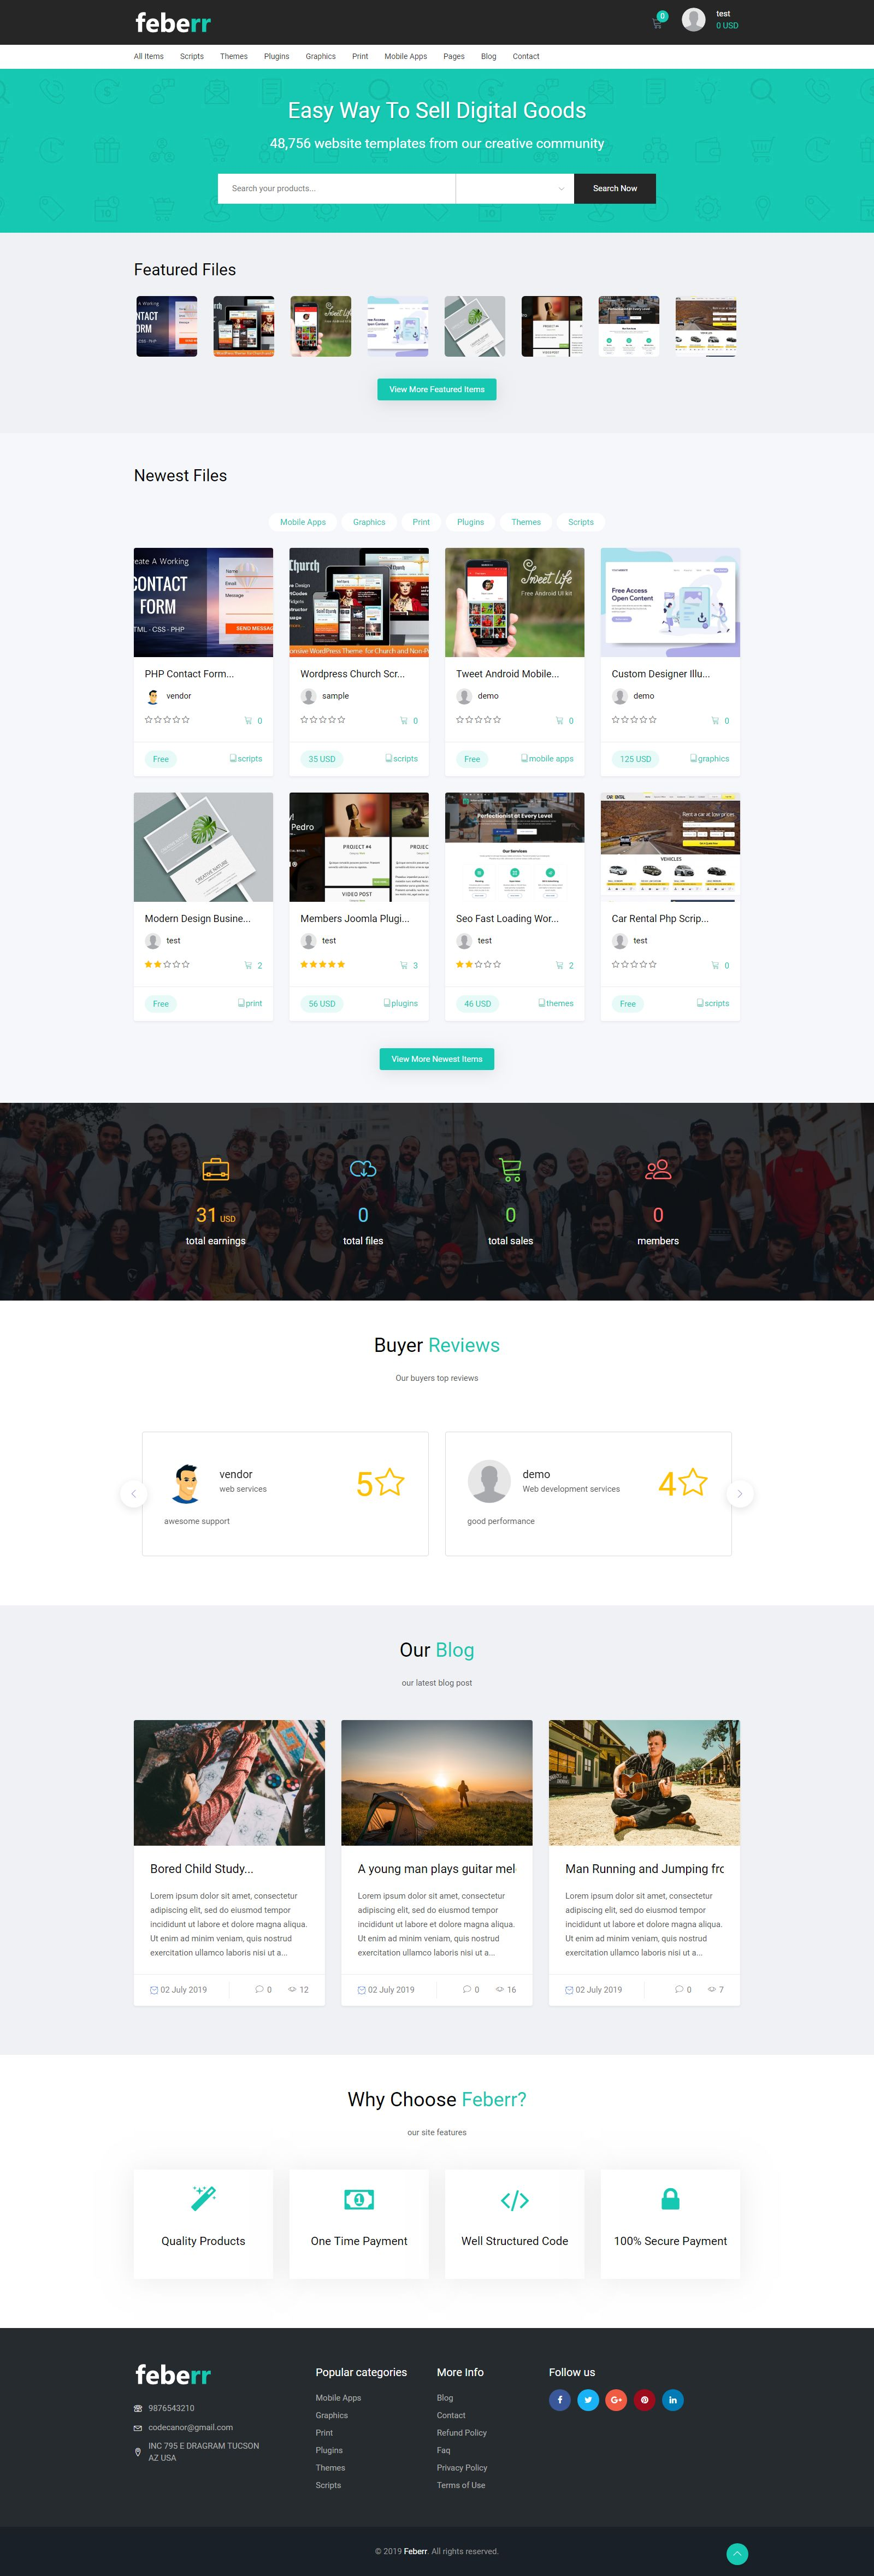 Feberr - Multivendor Digital Products Marketplace  Screenshot 1